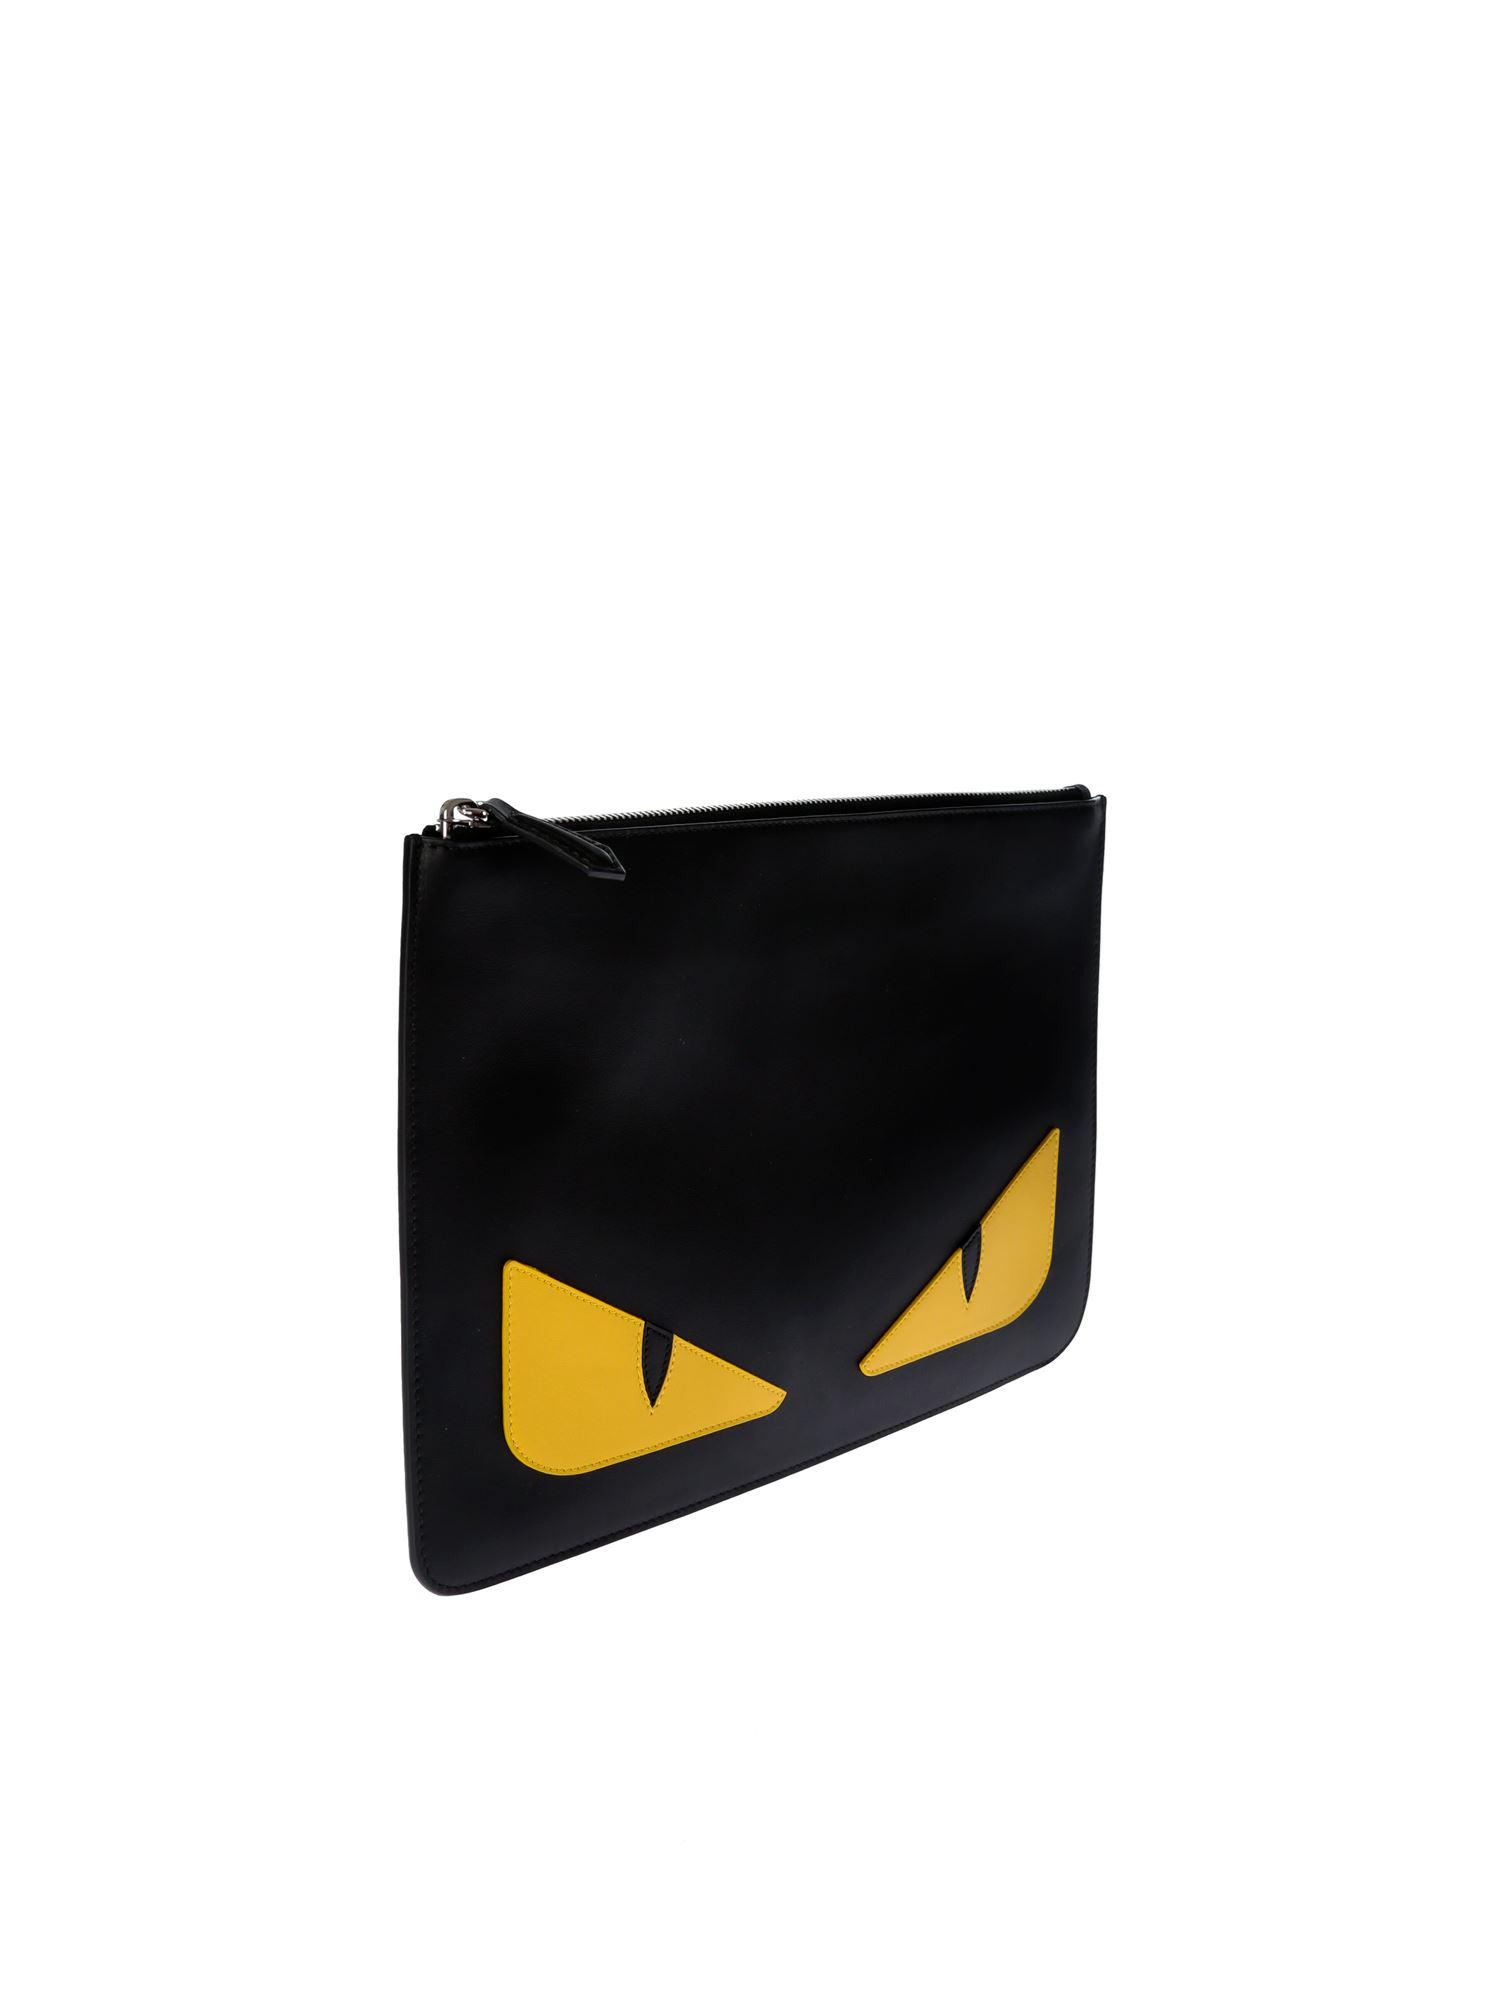 b2d19d89e88f Fendi Black Leather Pouch With Eyes Inlay in Black - Save 8% - Lyst